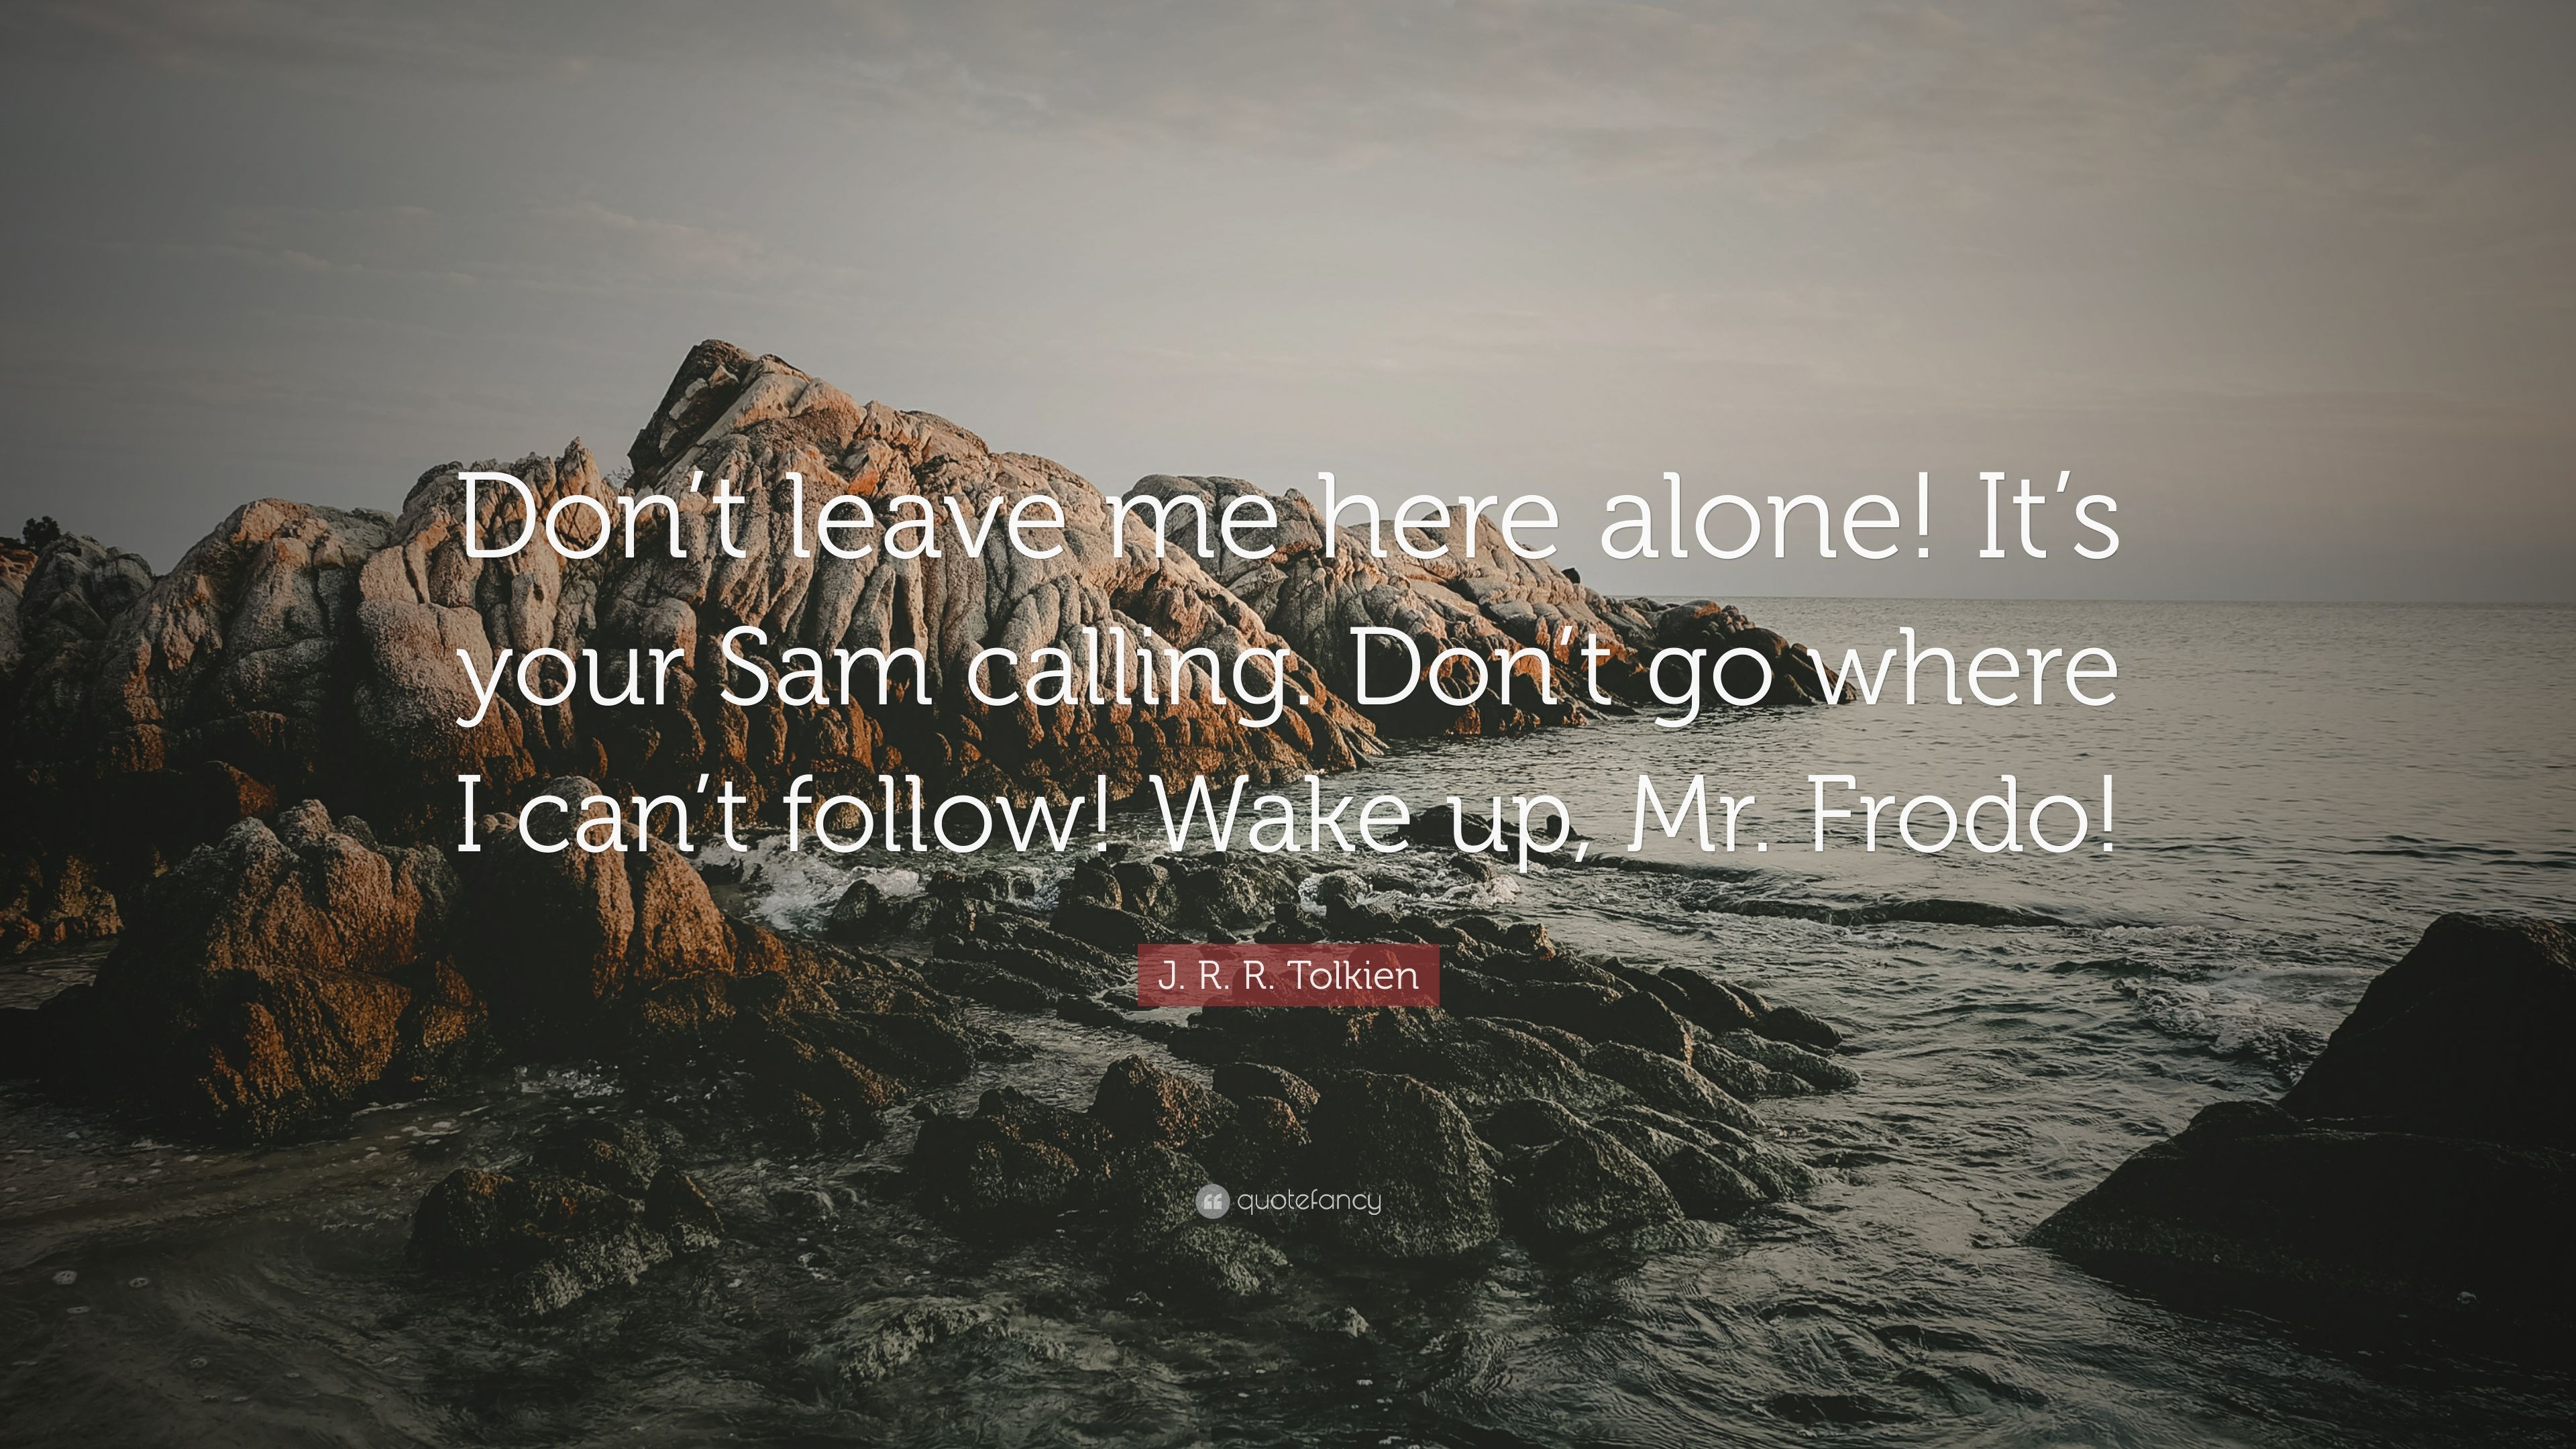 J R R Tolkien Quote Dont Leave Me Here Alone Its Your Sam